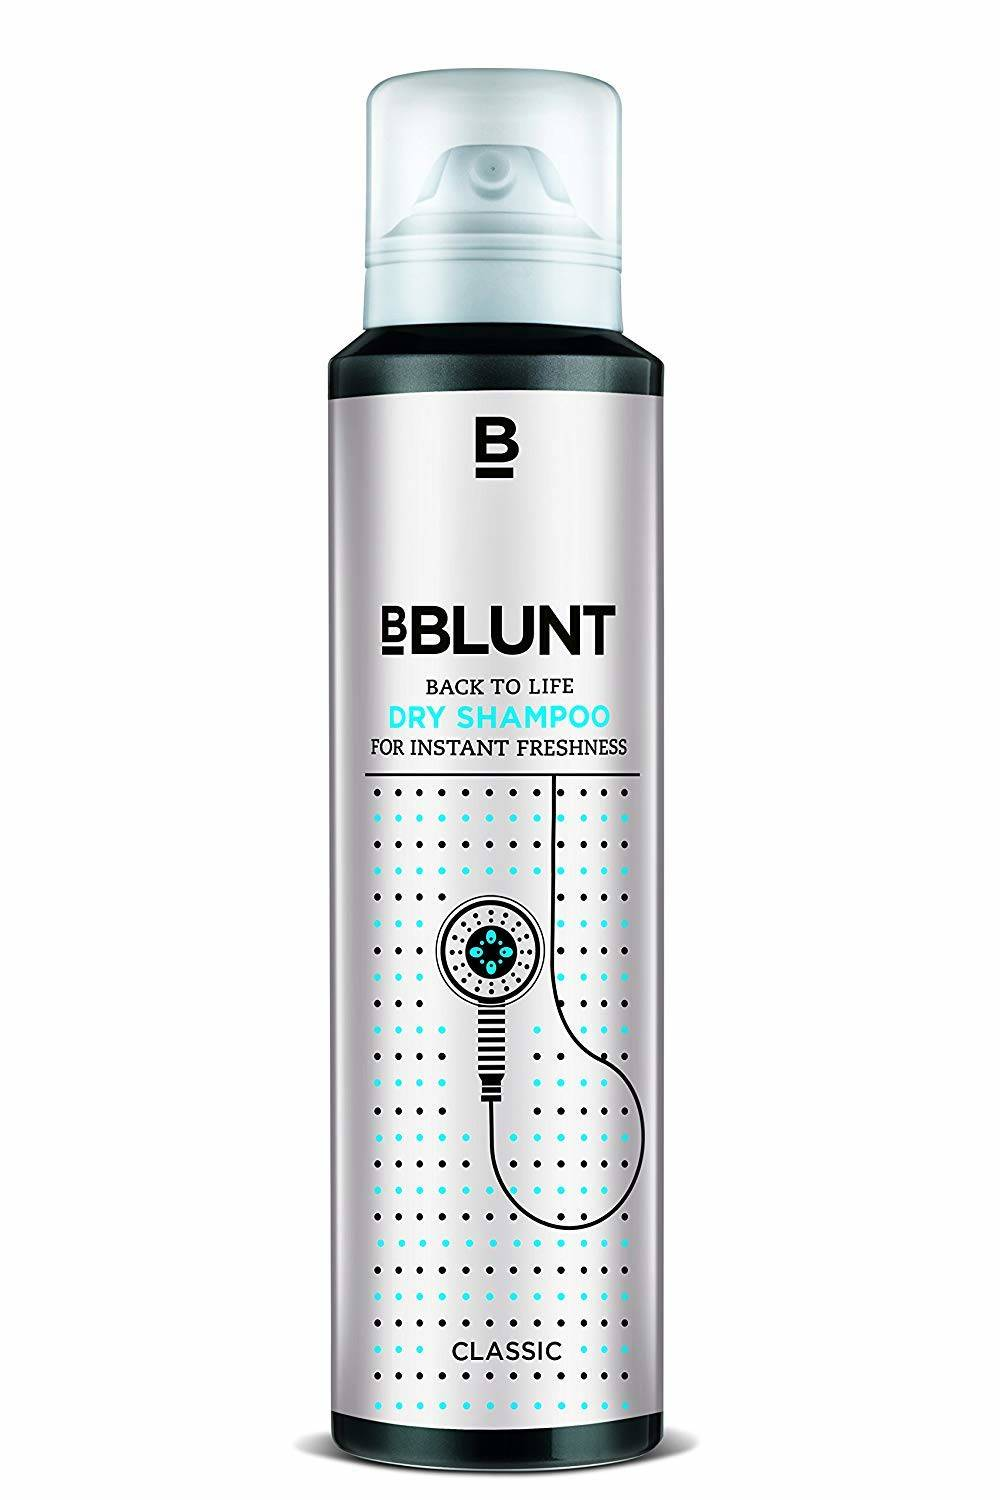 BBLUNT Back To Life Dry Shampoo for Instant Freshness, 125ml